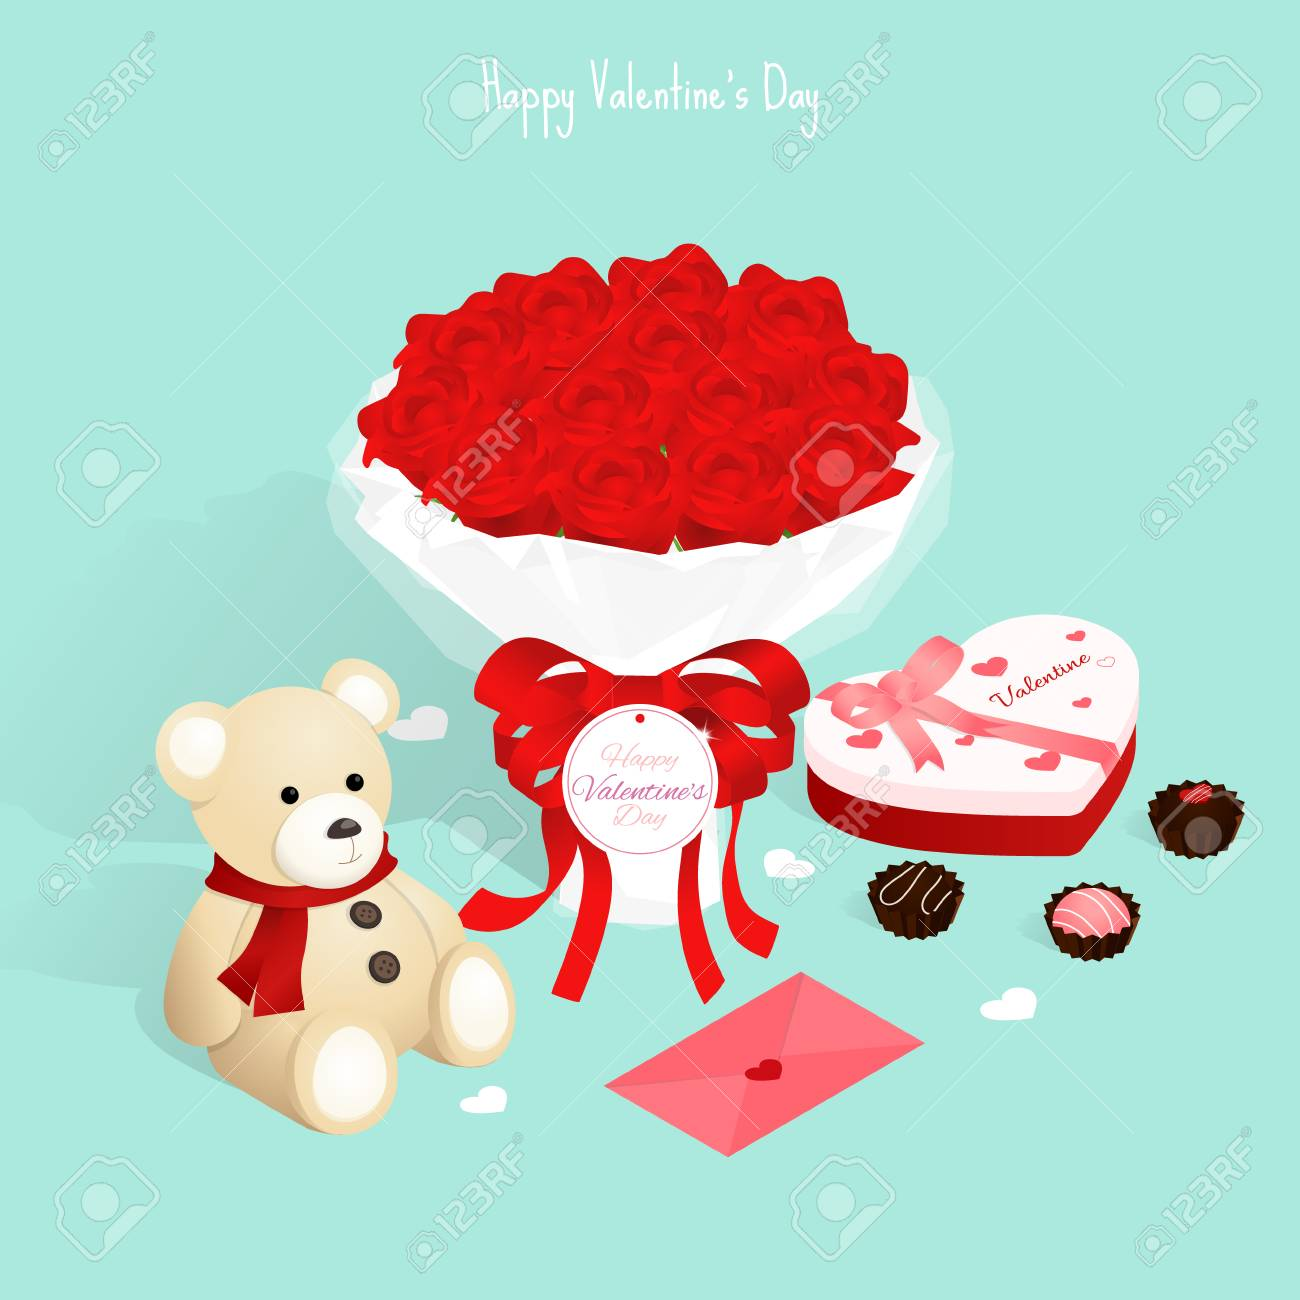 love letter Valentine/'s Day Illustration Clipart heart anniversary Love holiday candy teddy bear romantic cupcake chocolate